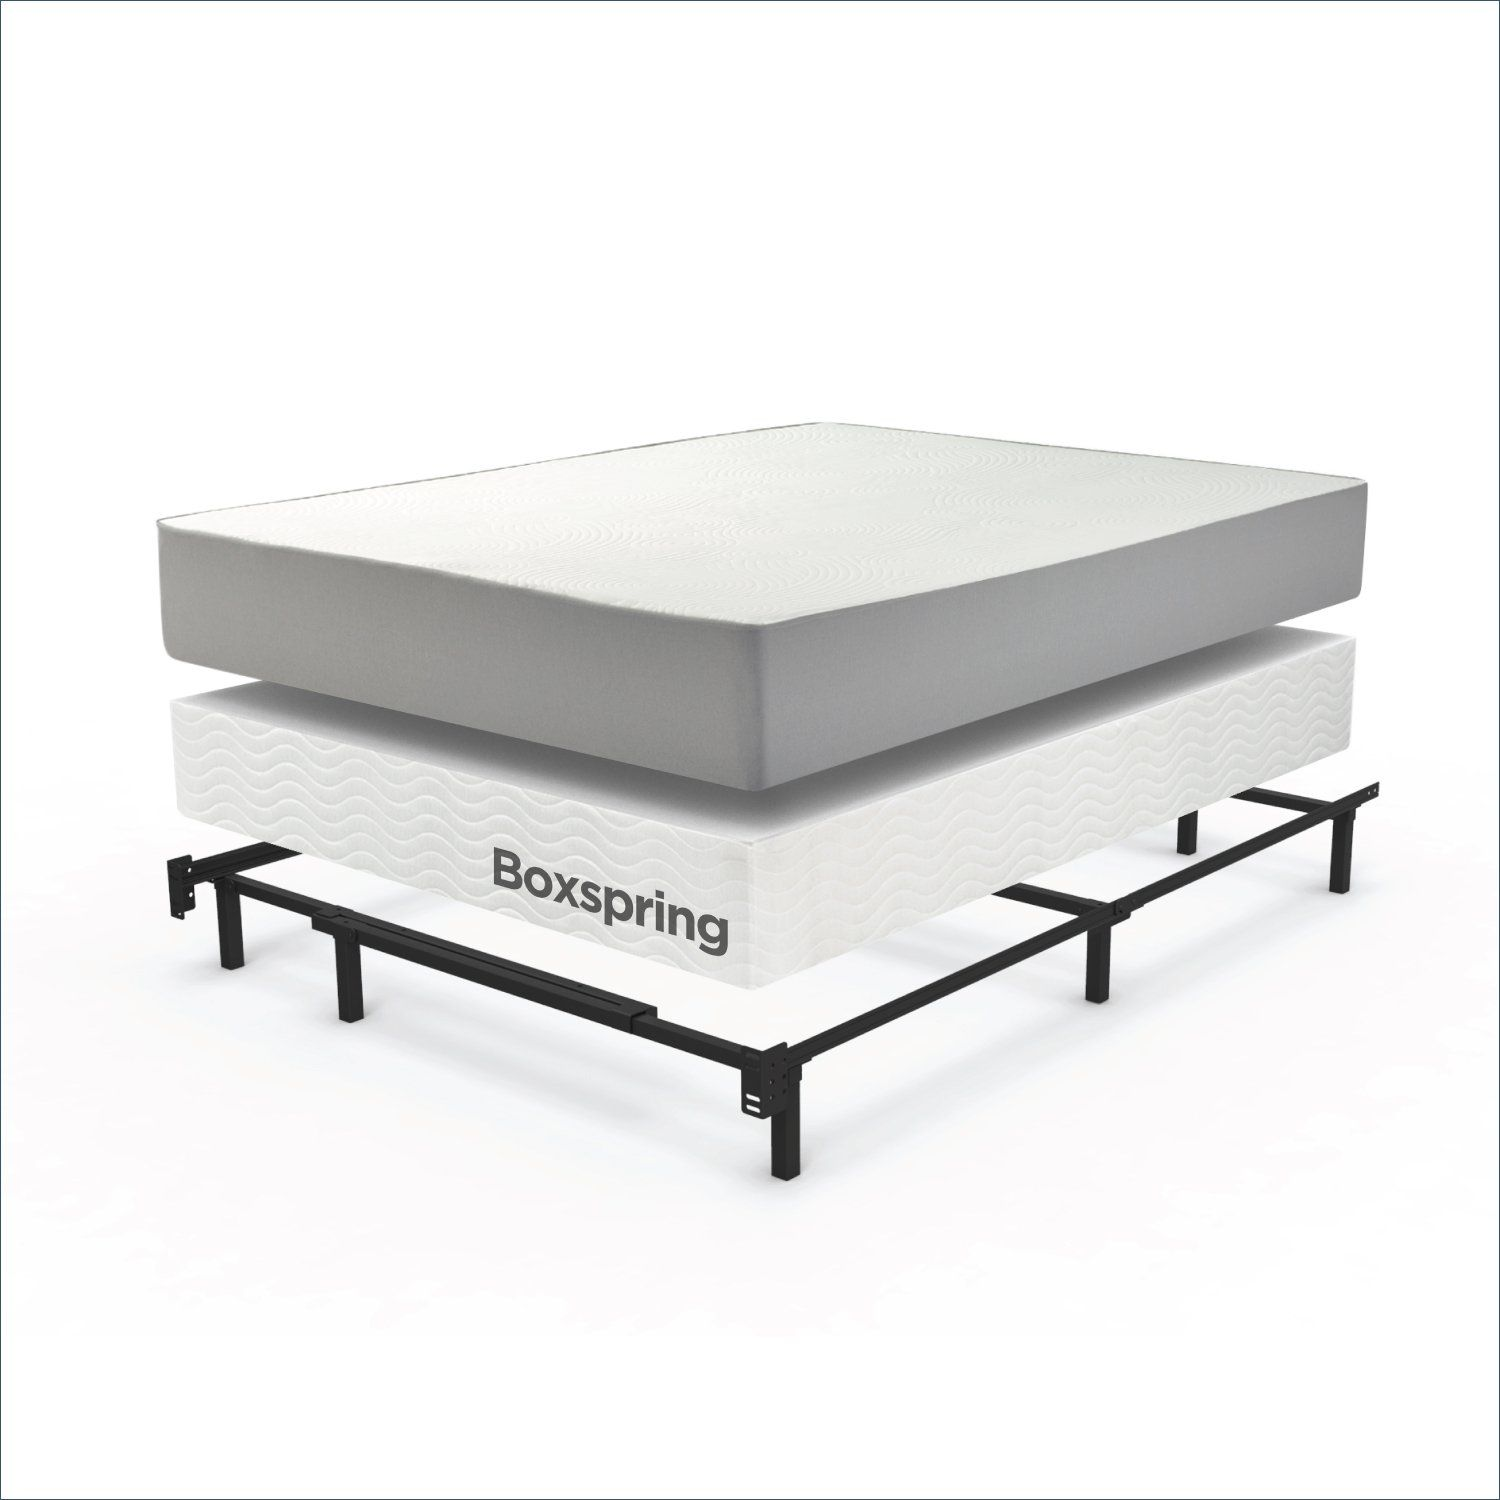 Zinus Compack 9leg Support Bed Frame For Box Spring And Mattress